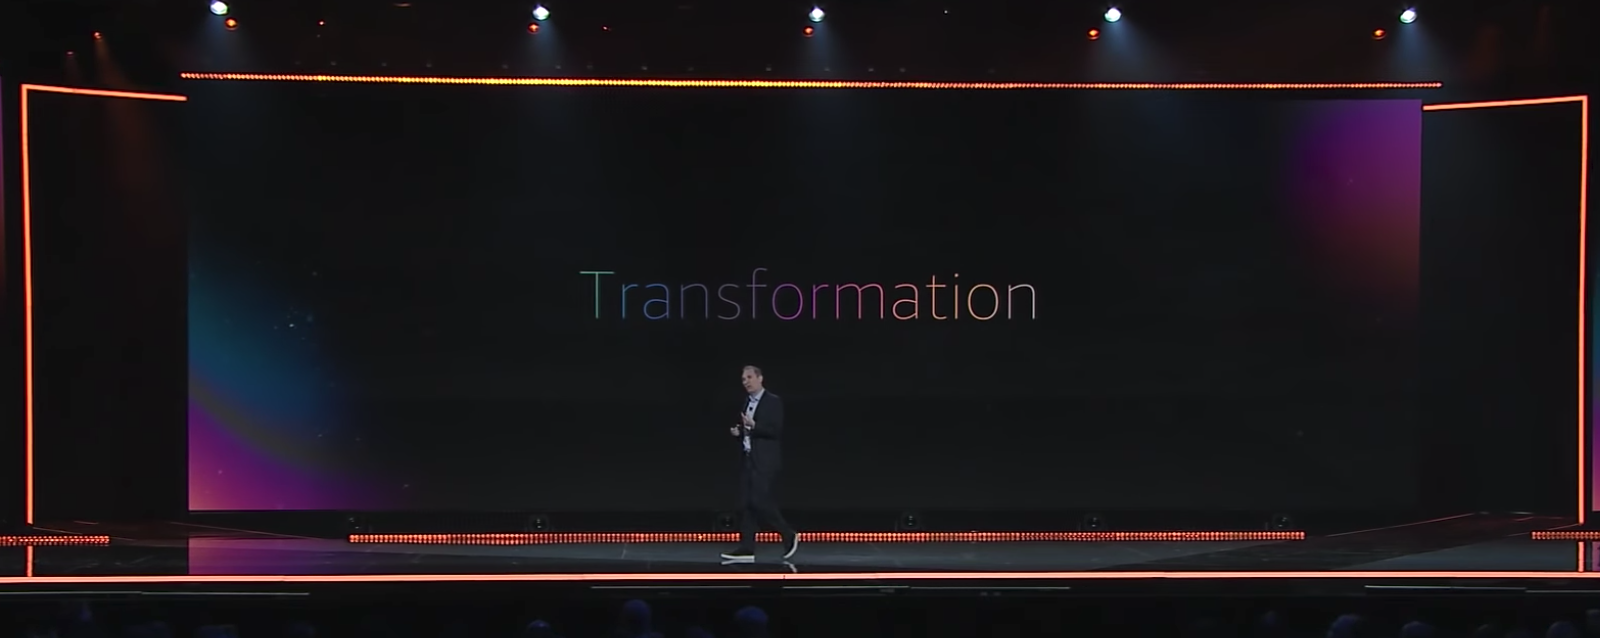 AWS CEO Andy Jassy's Keynote pushed full-migration and transformation as a key theme.